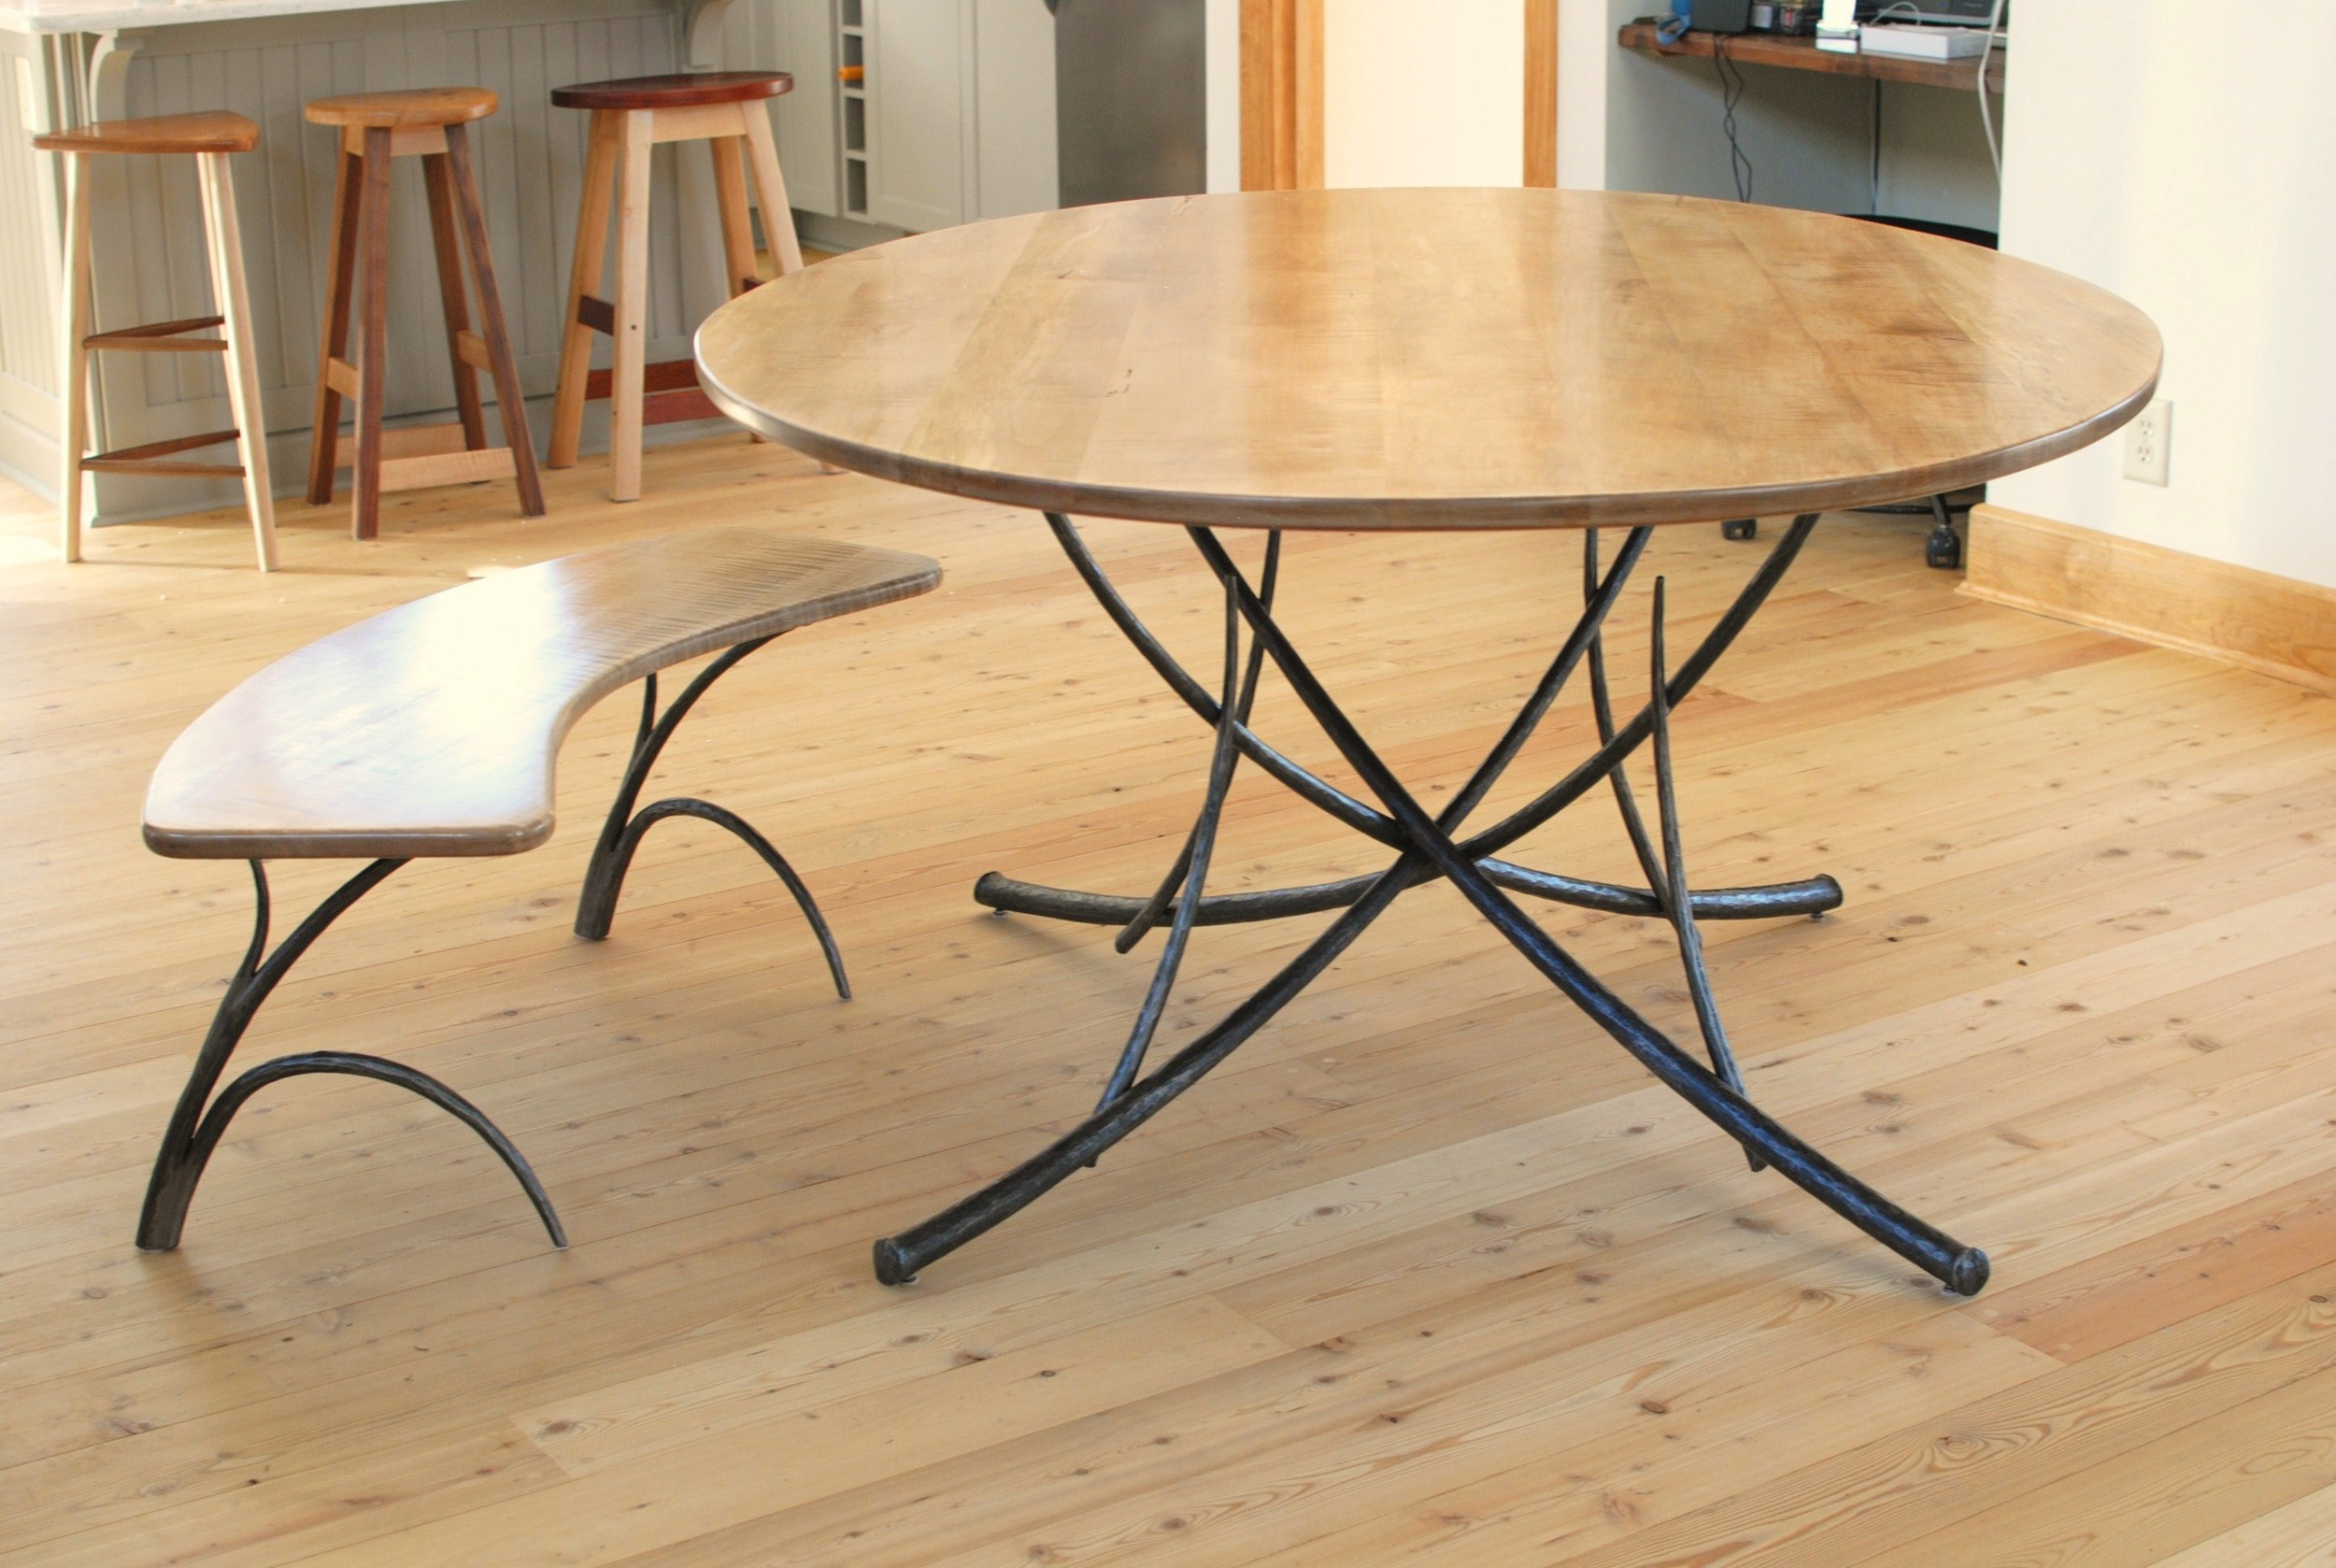 Woodlands dining table & bench with forged steel bases